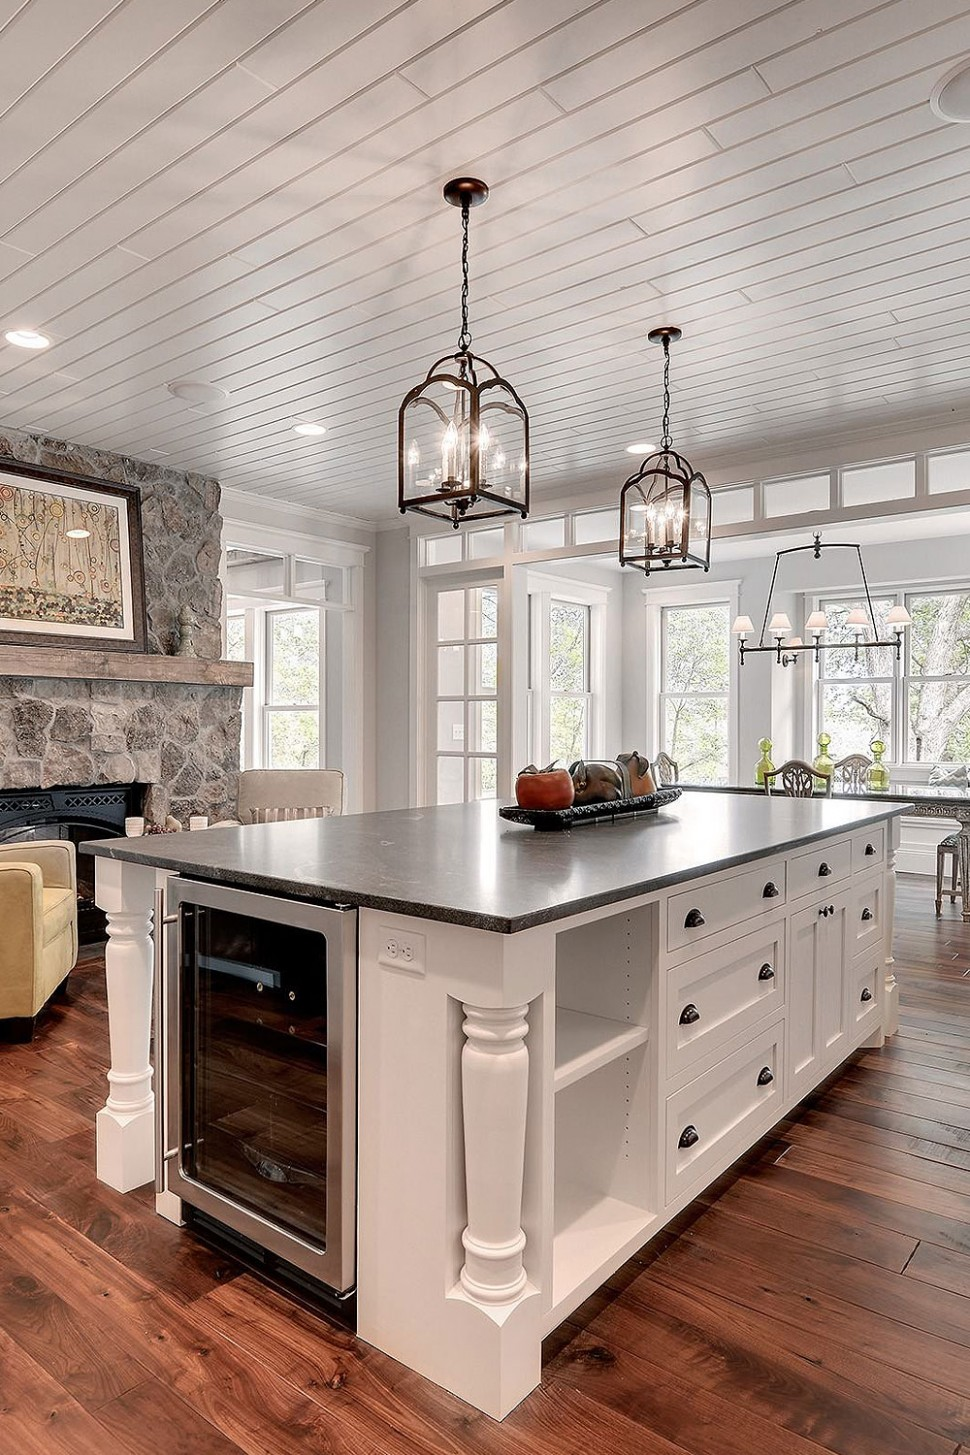 12+ Black Countertop Backsplash Ideas (Tile Designs, Tips & Advice!) - Kitchens With White Cabinets And Dark Granite Countertops